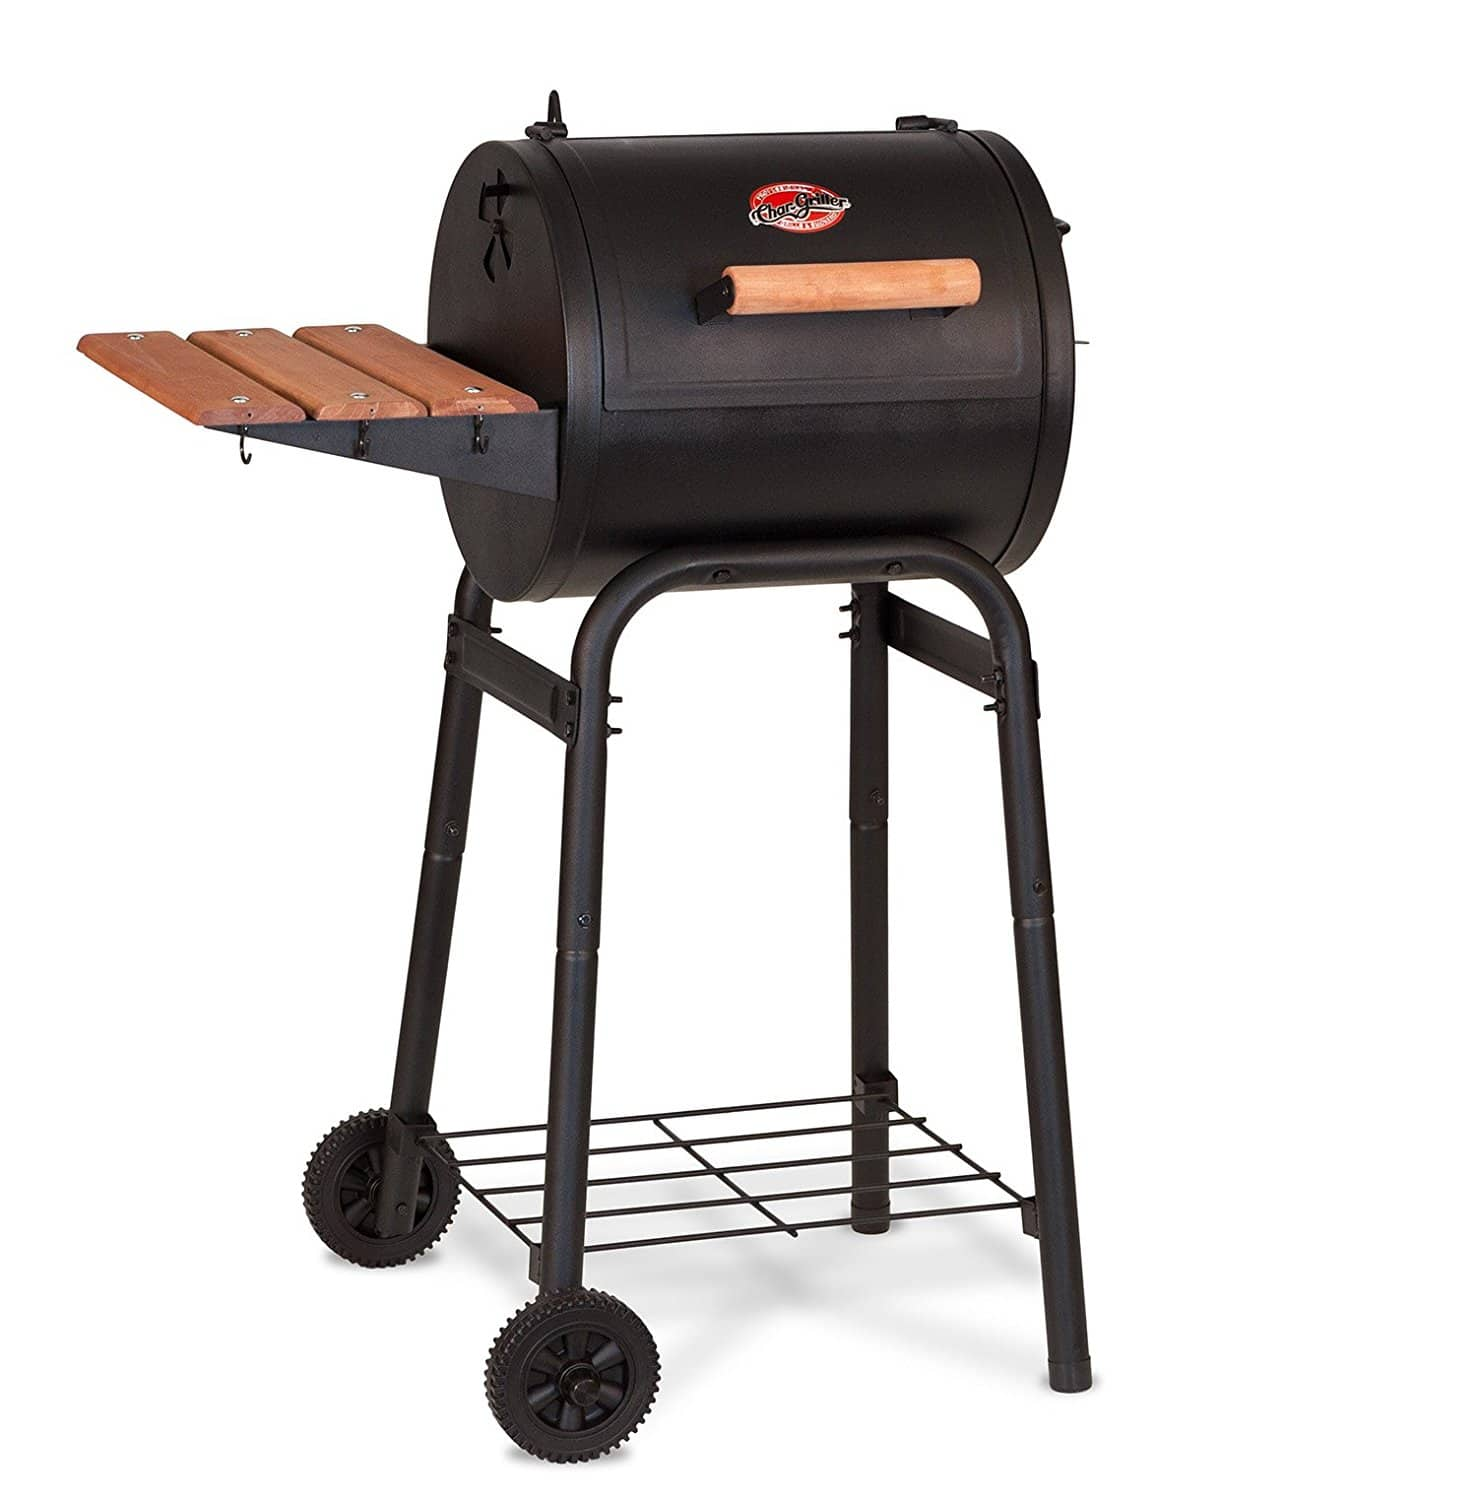 Char-Griller 1515 Patio Pro Charcoal Grill